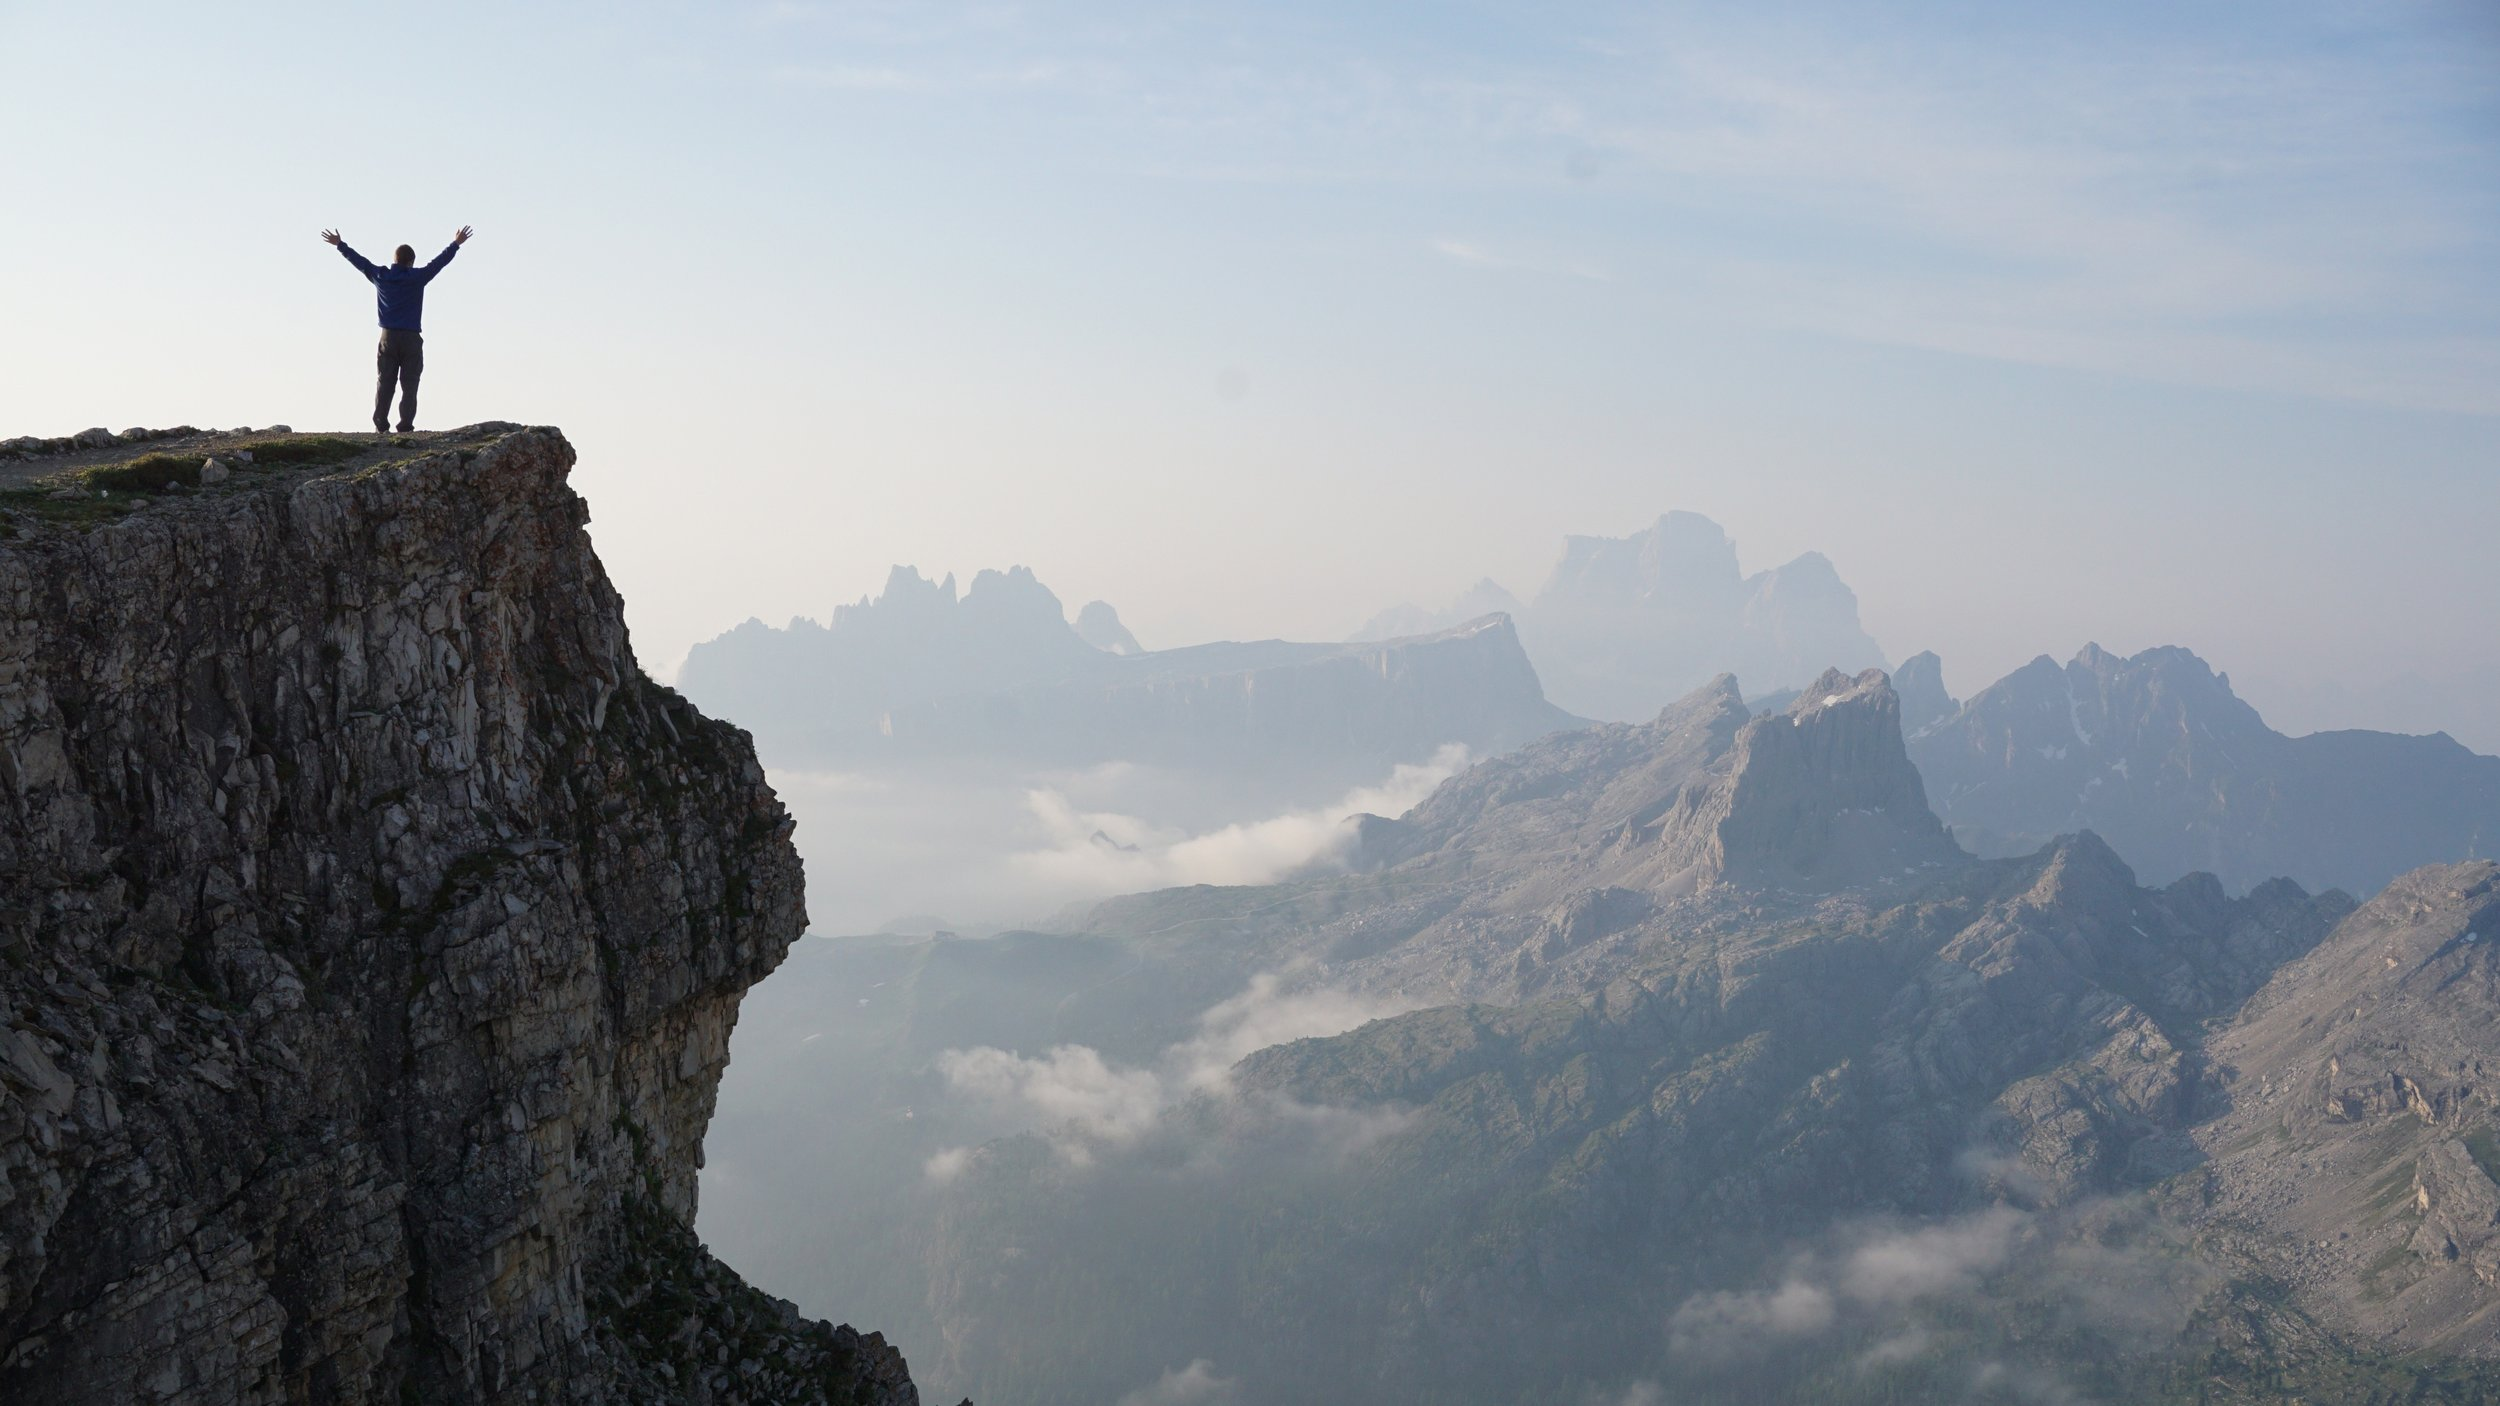 Man Worshiping From a Mountain Top Christian Stock Photo.jpg